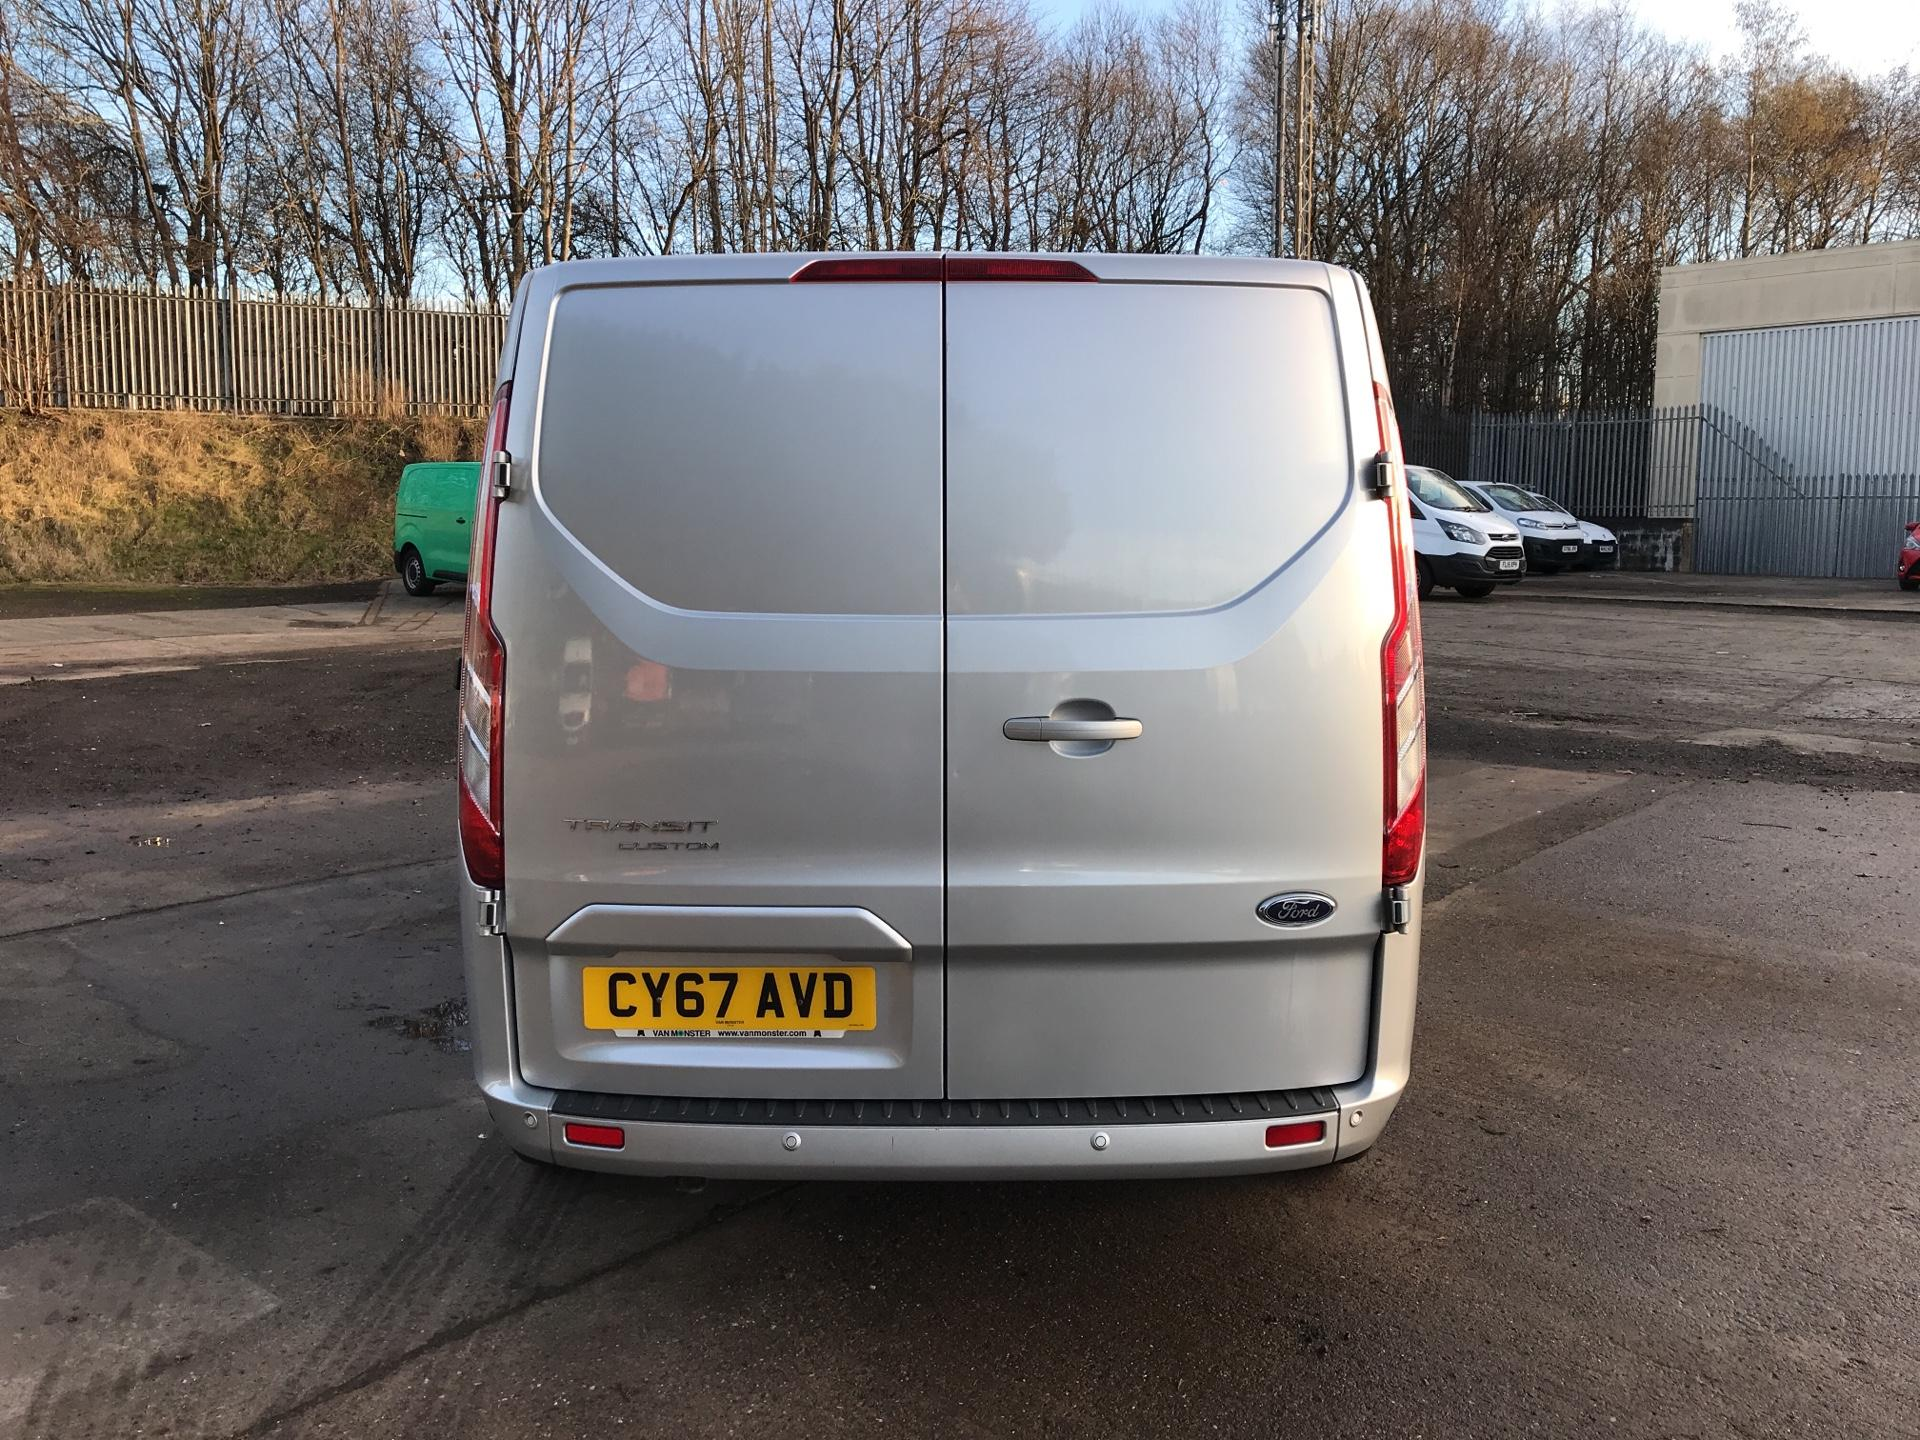 2017 Ford Transit Custom 270 L1 DIESEL FWD 2.0 TDCI 130PS LOW ROOF LIMITED VAN EURO 6 (CY67AVD) Image 4